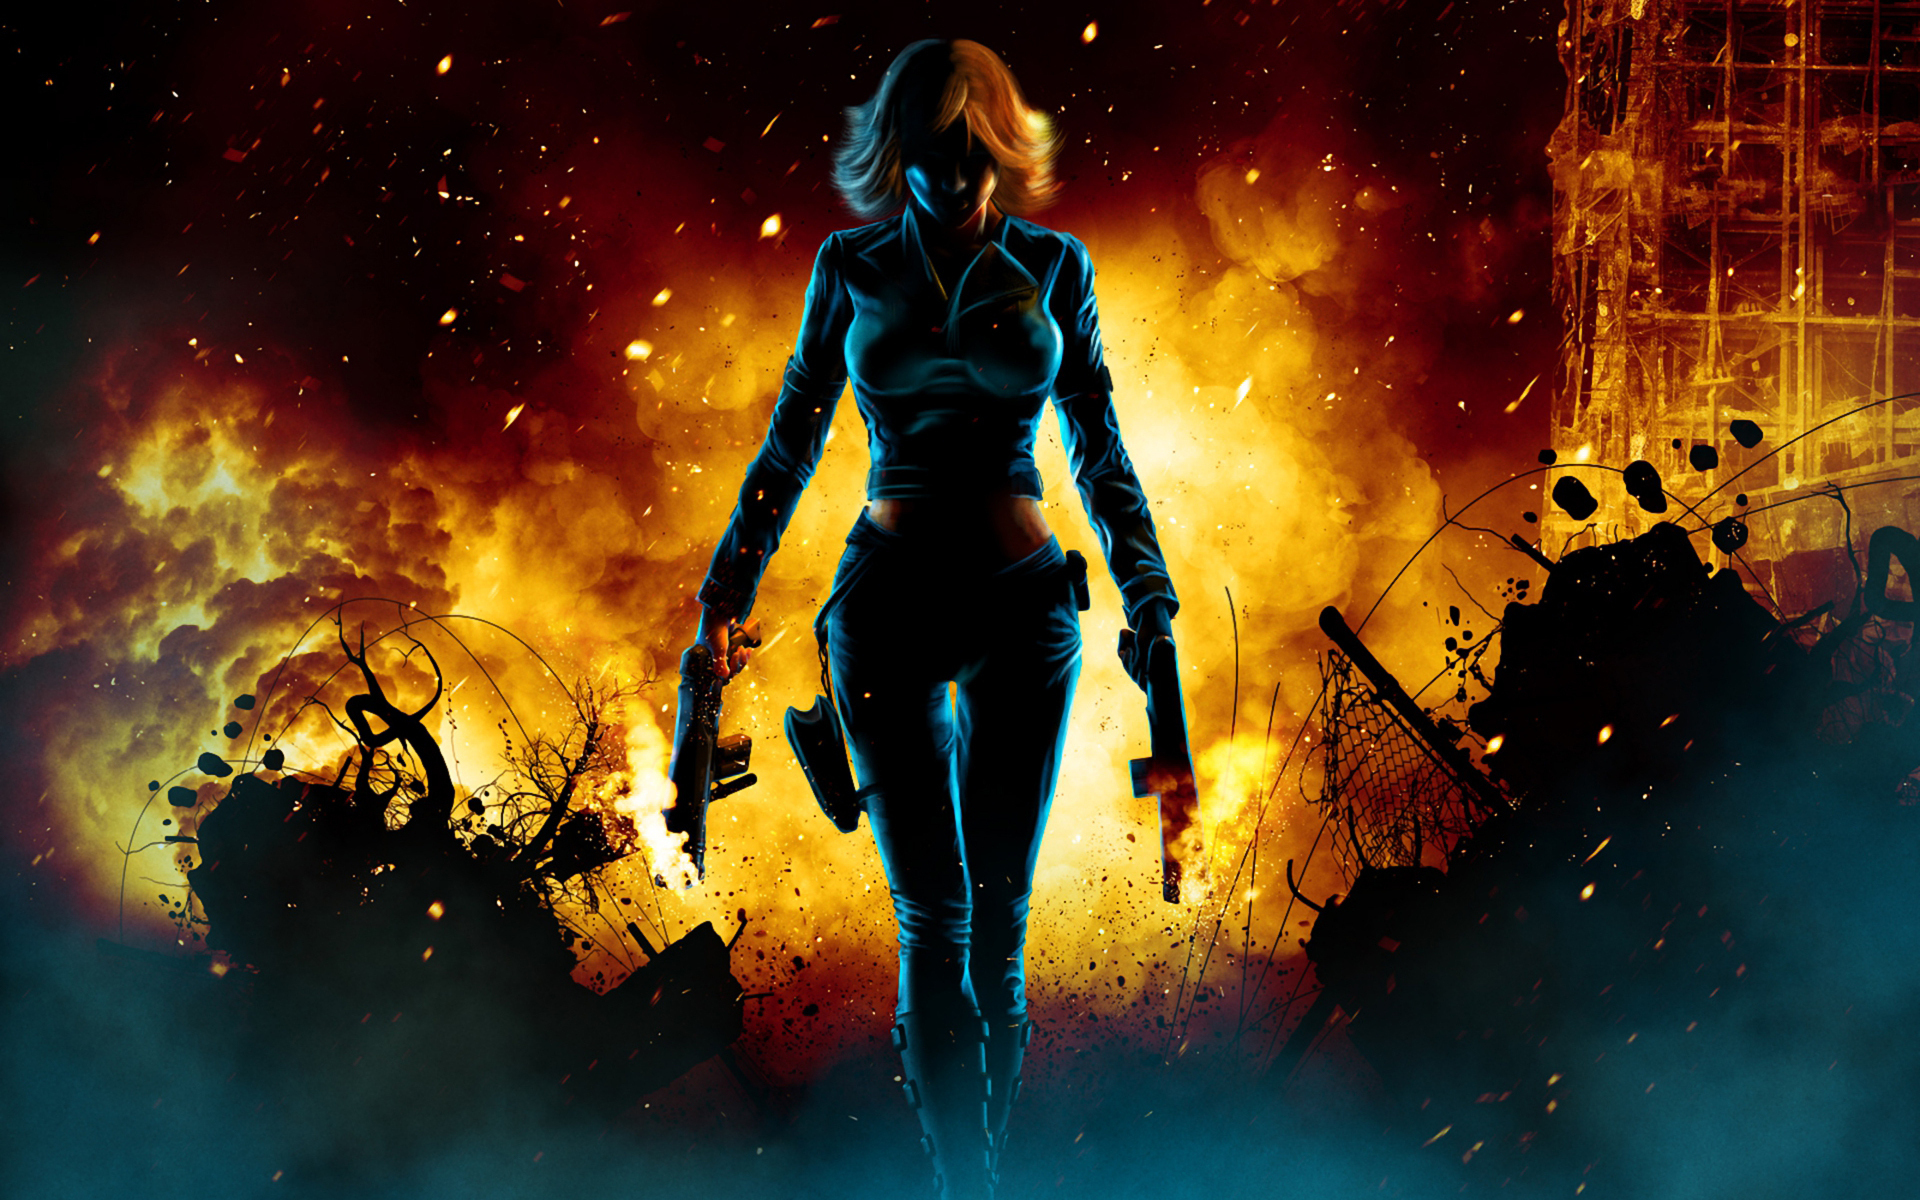 2048x1152 Black Widow Walking Through Fire 2048x1152 Resolution Hd